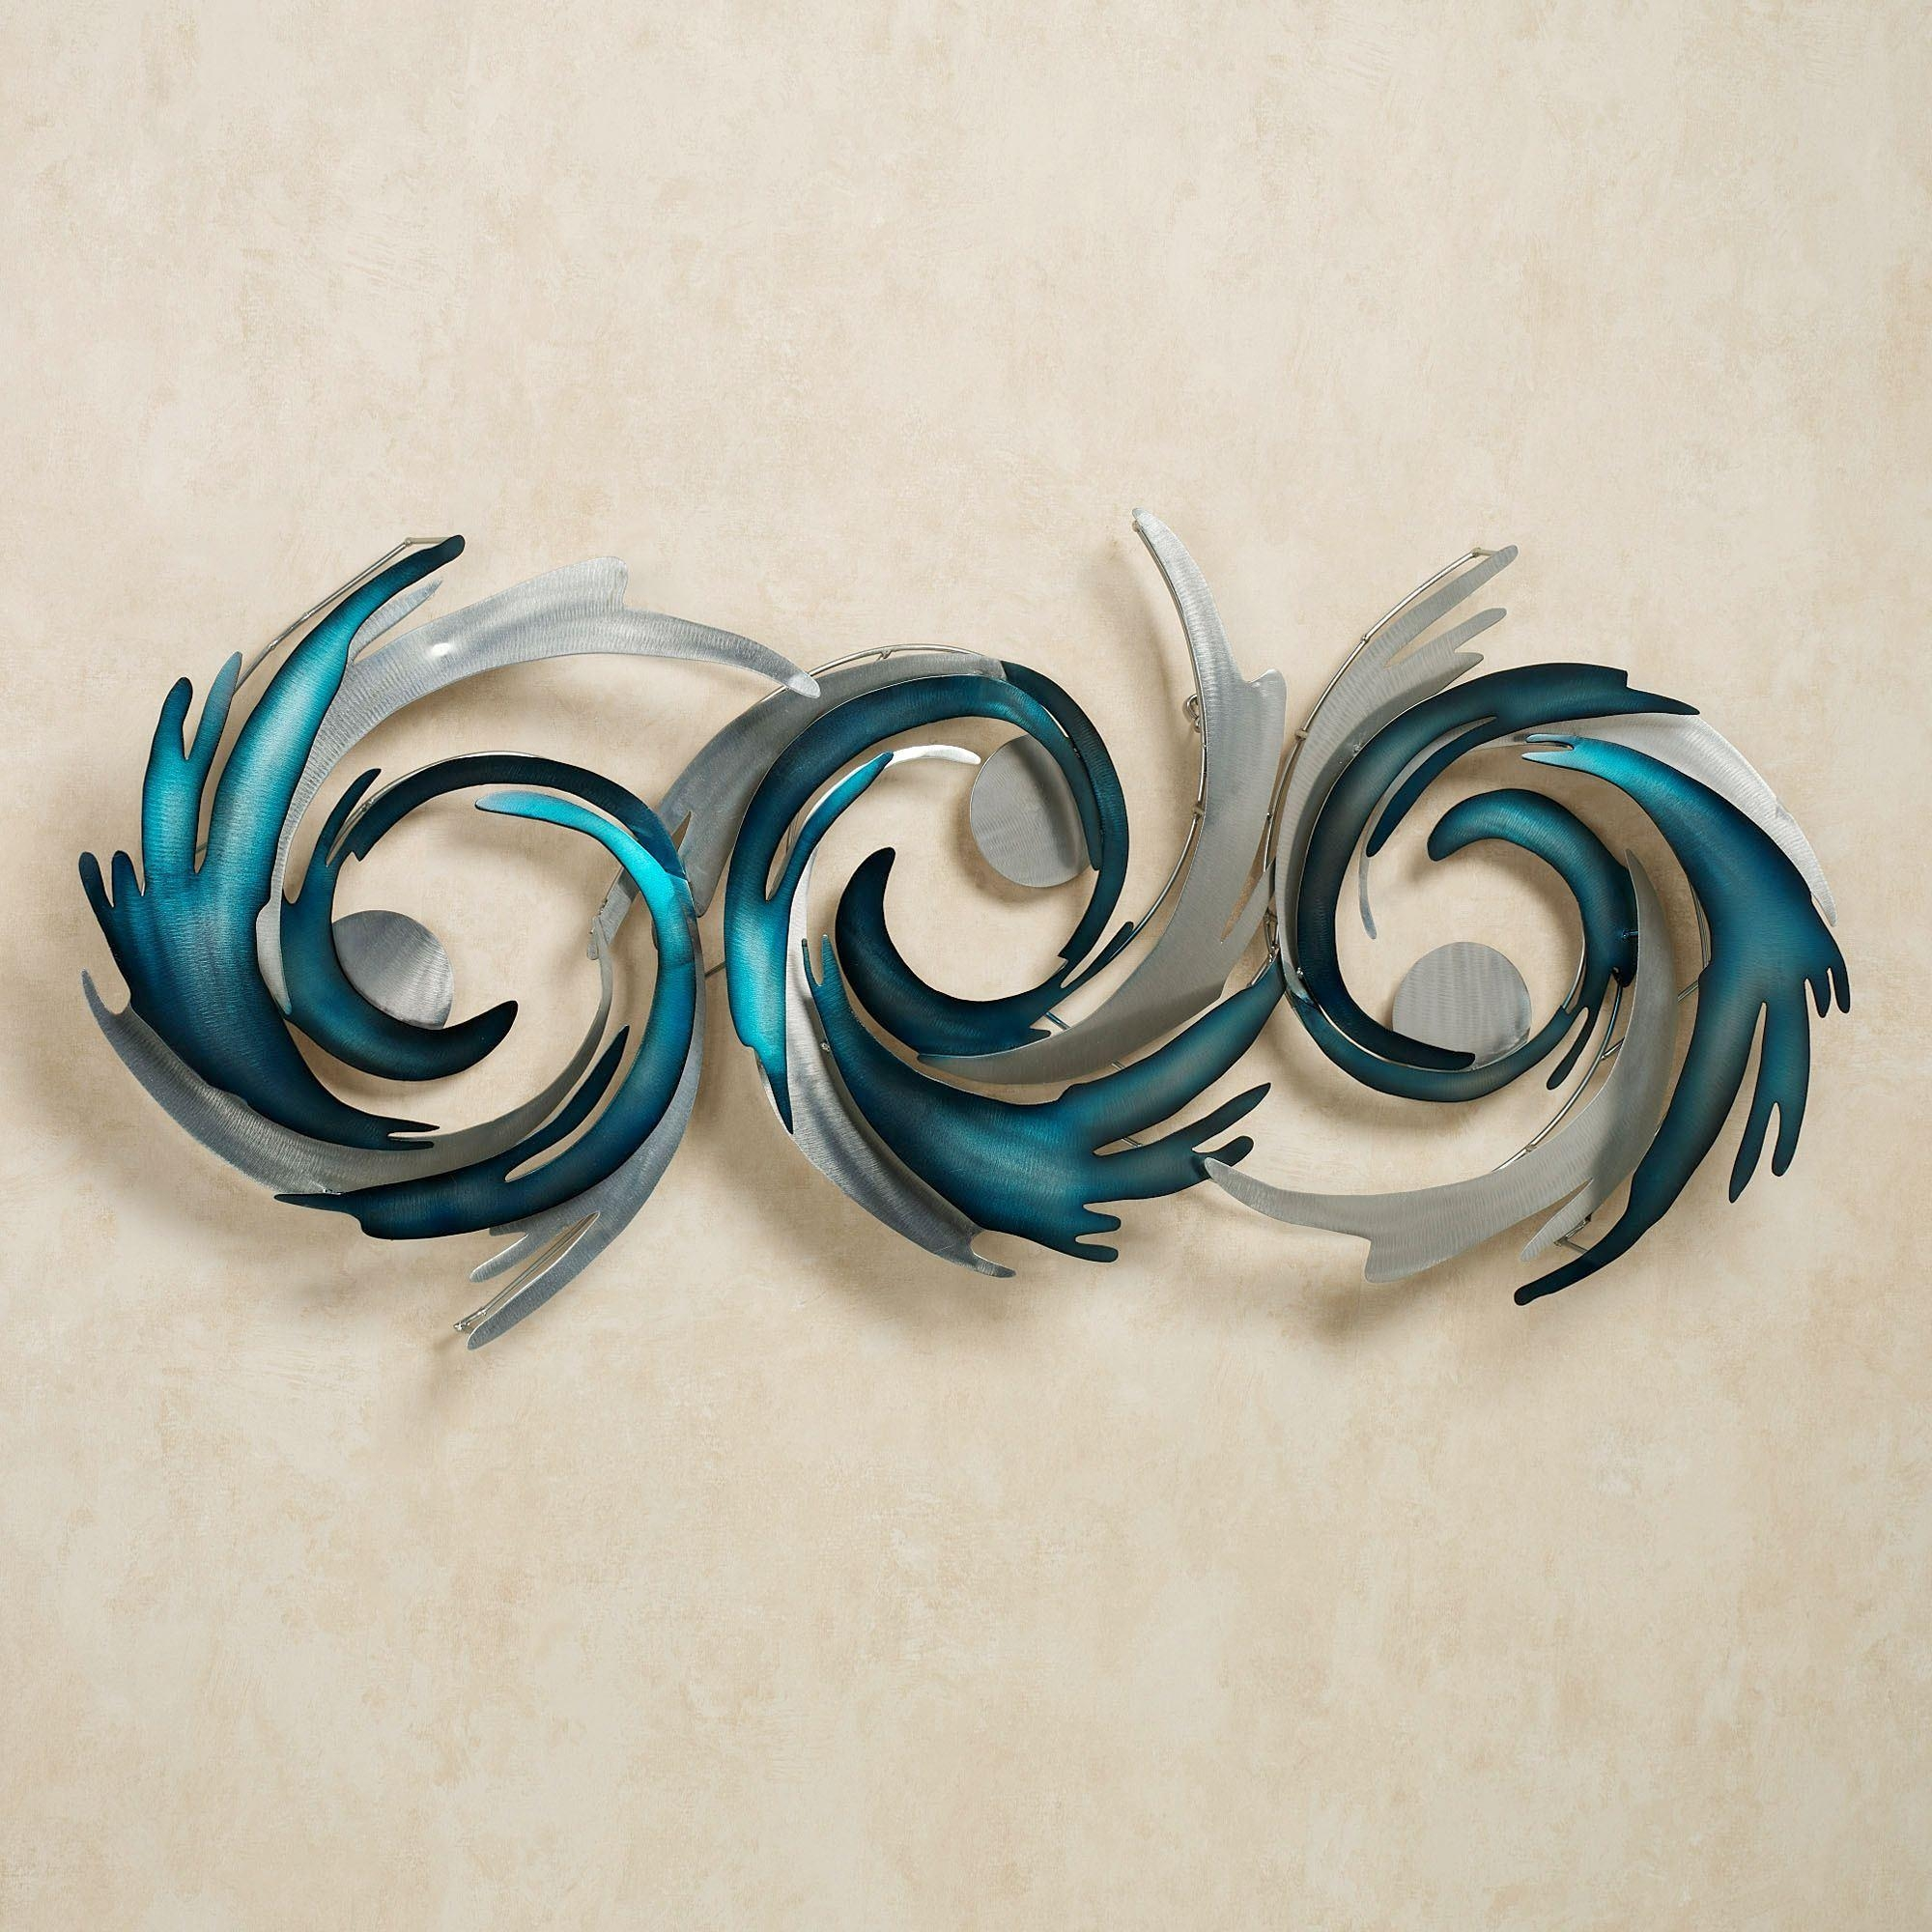 Contemporary Metal Wall Art Sculptures | Touch Of Class Intended For Touch Of Class Metal Wall Art (Image 4 of 20)